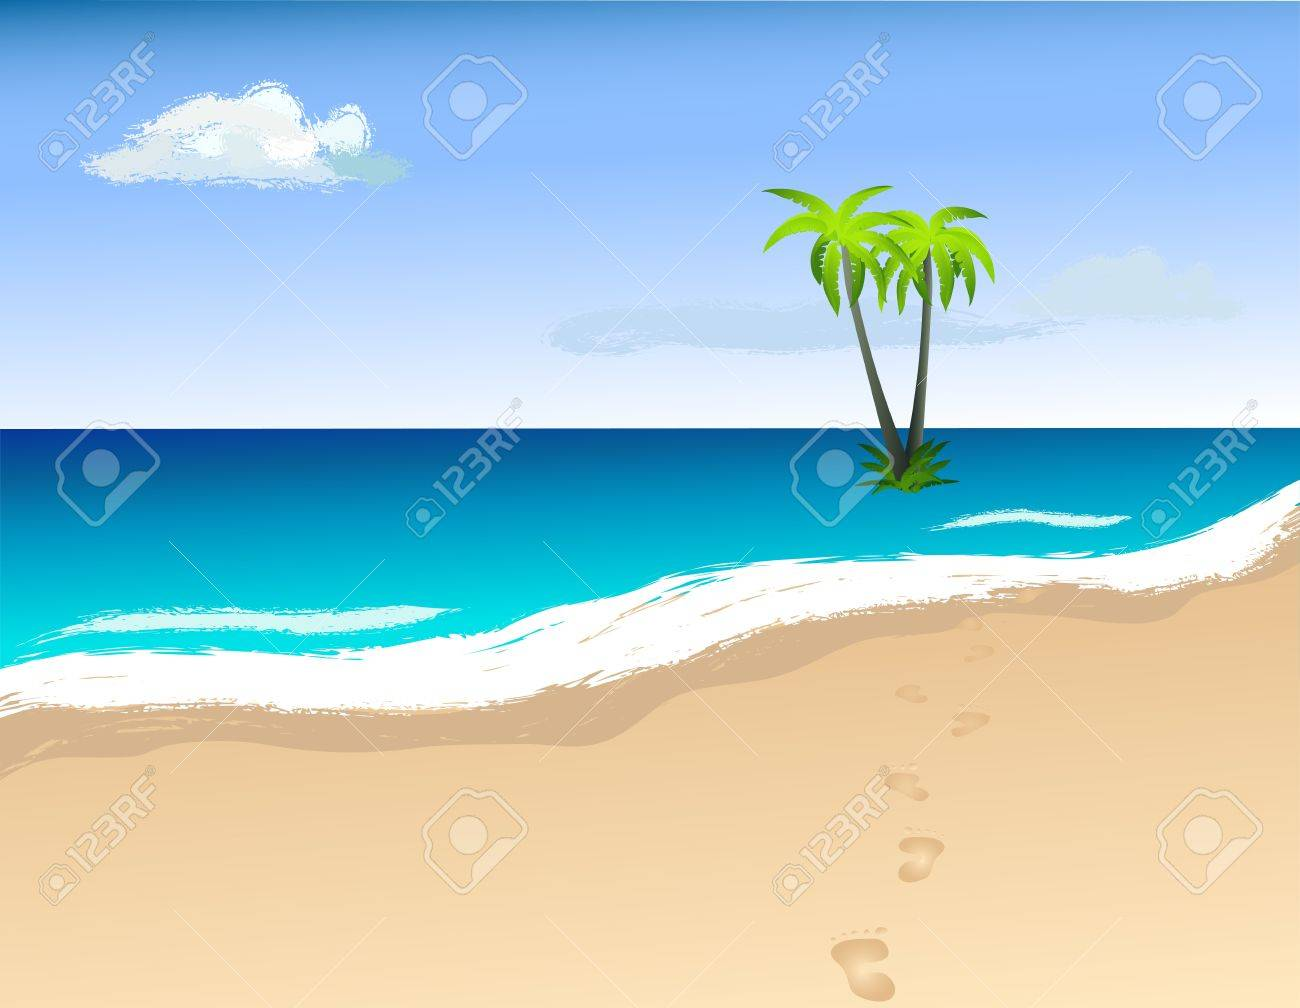 Palm trees on the island. Vector image. Stock Vector - 20830502